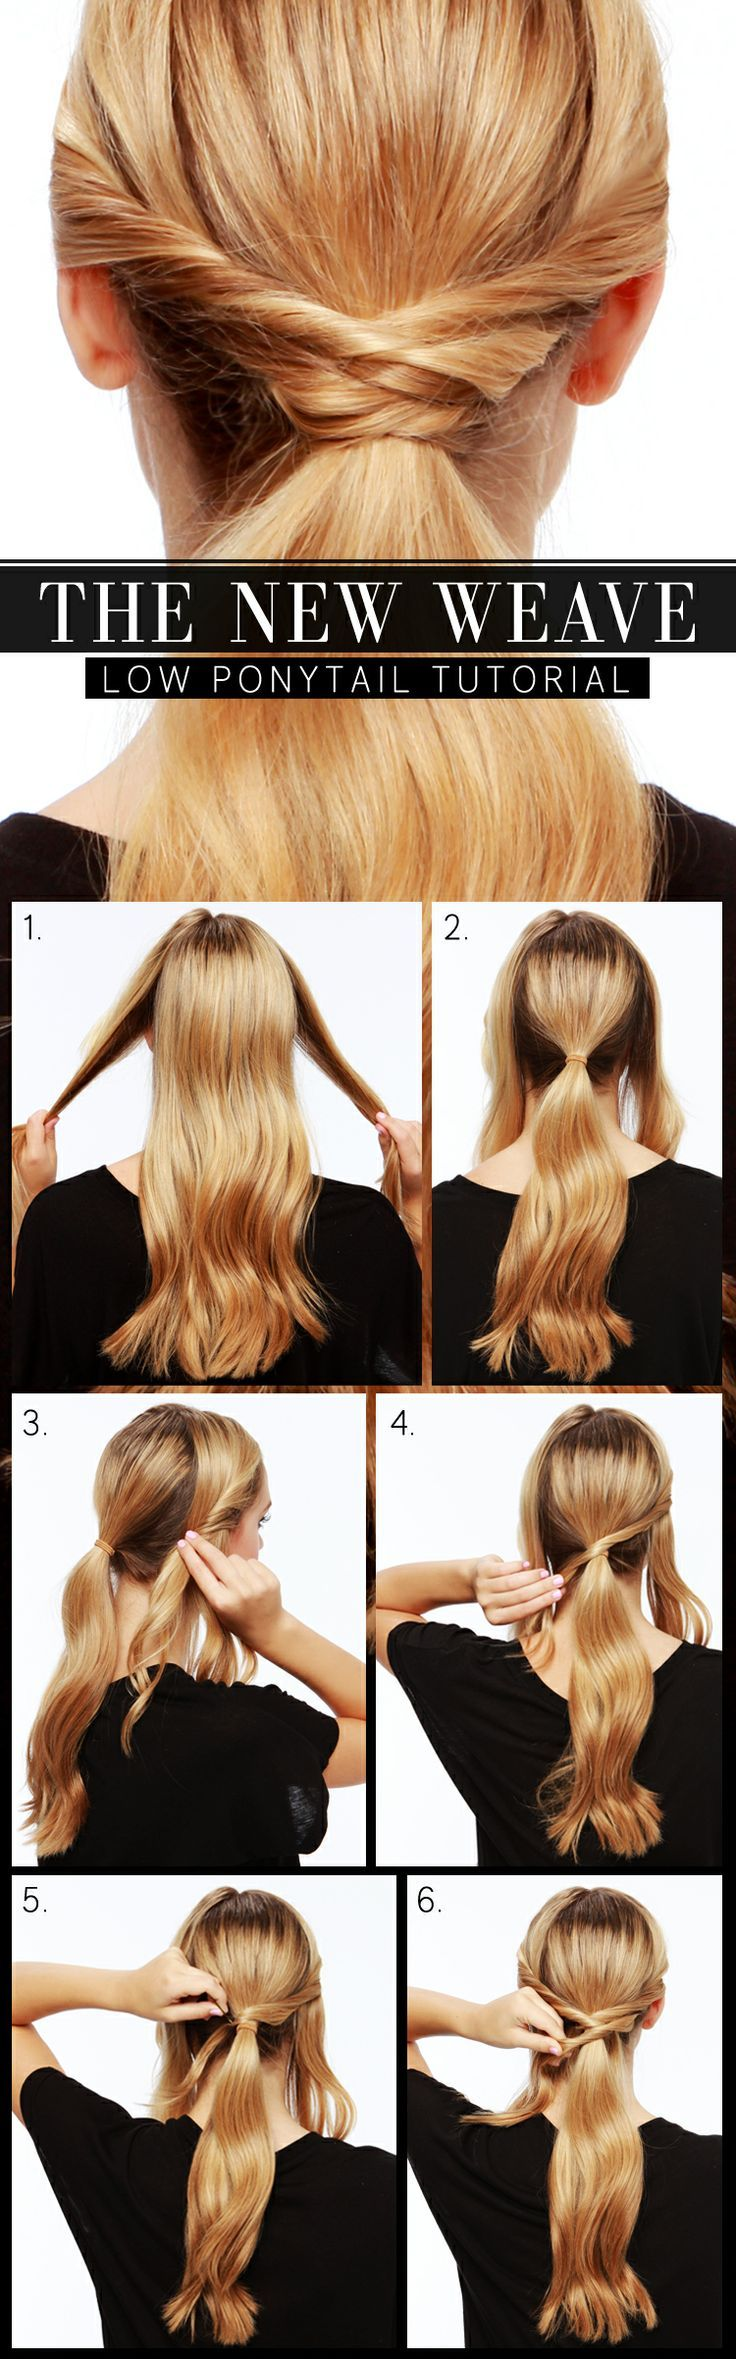 Super 1000 Images About Cabelo E Penteados On Pinterest Braid Short Hairstyles Gunalazisus